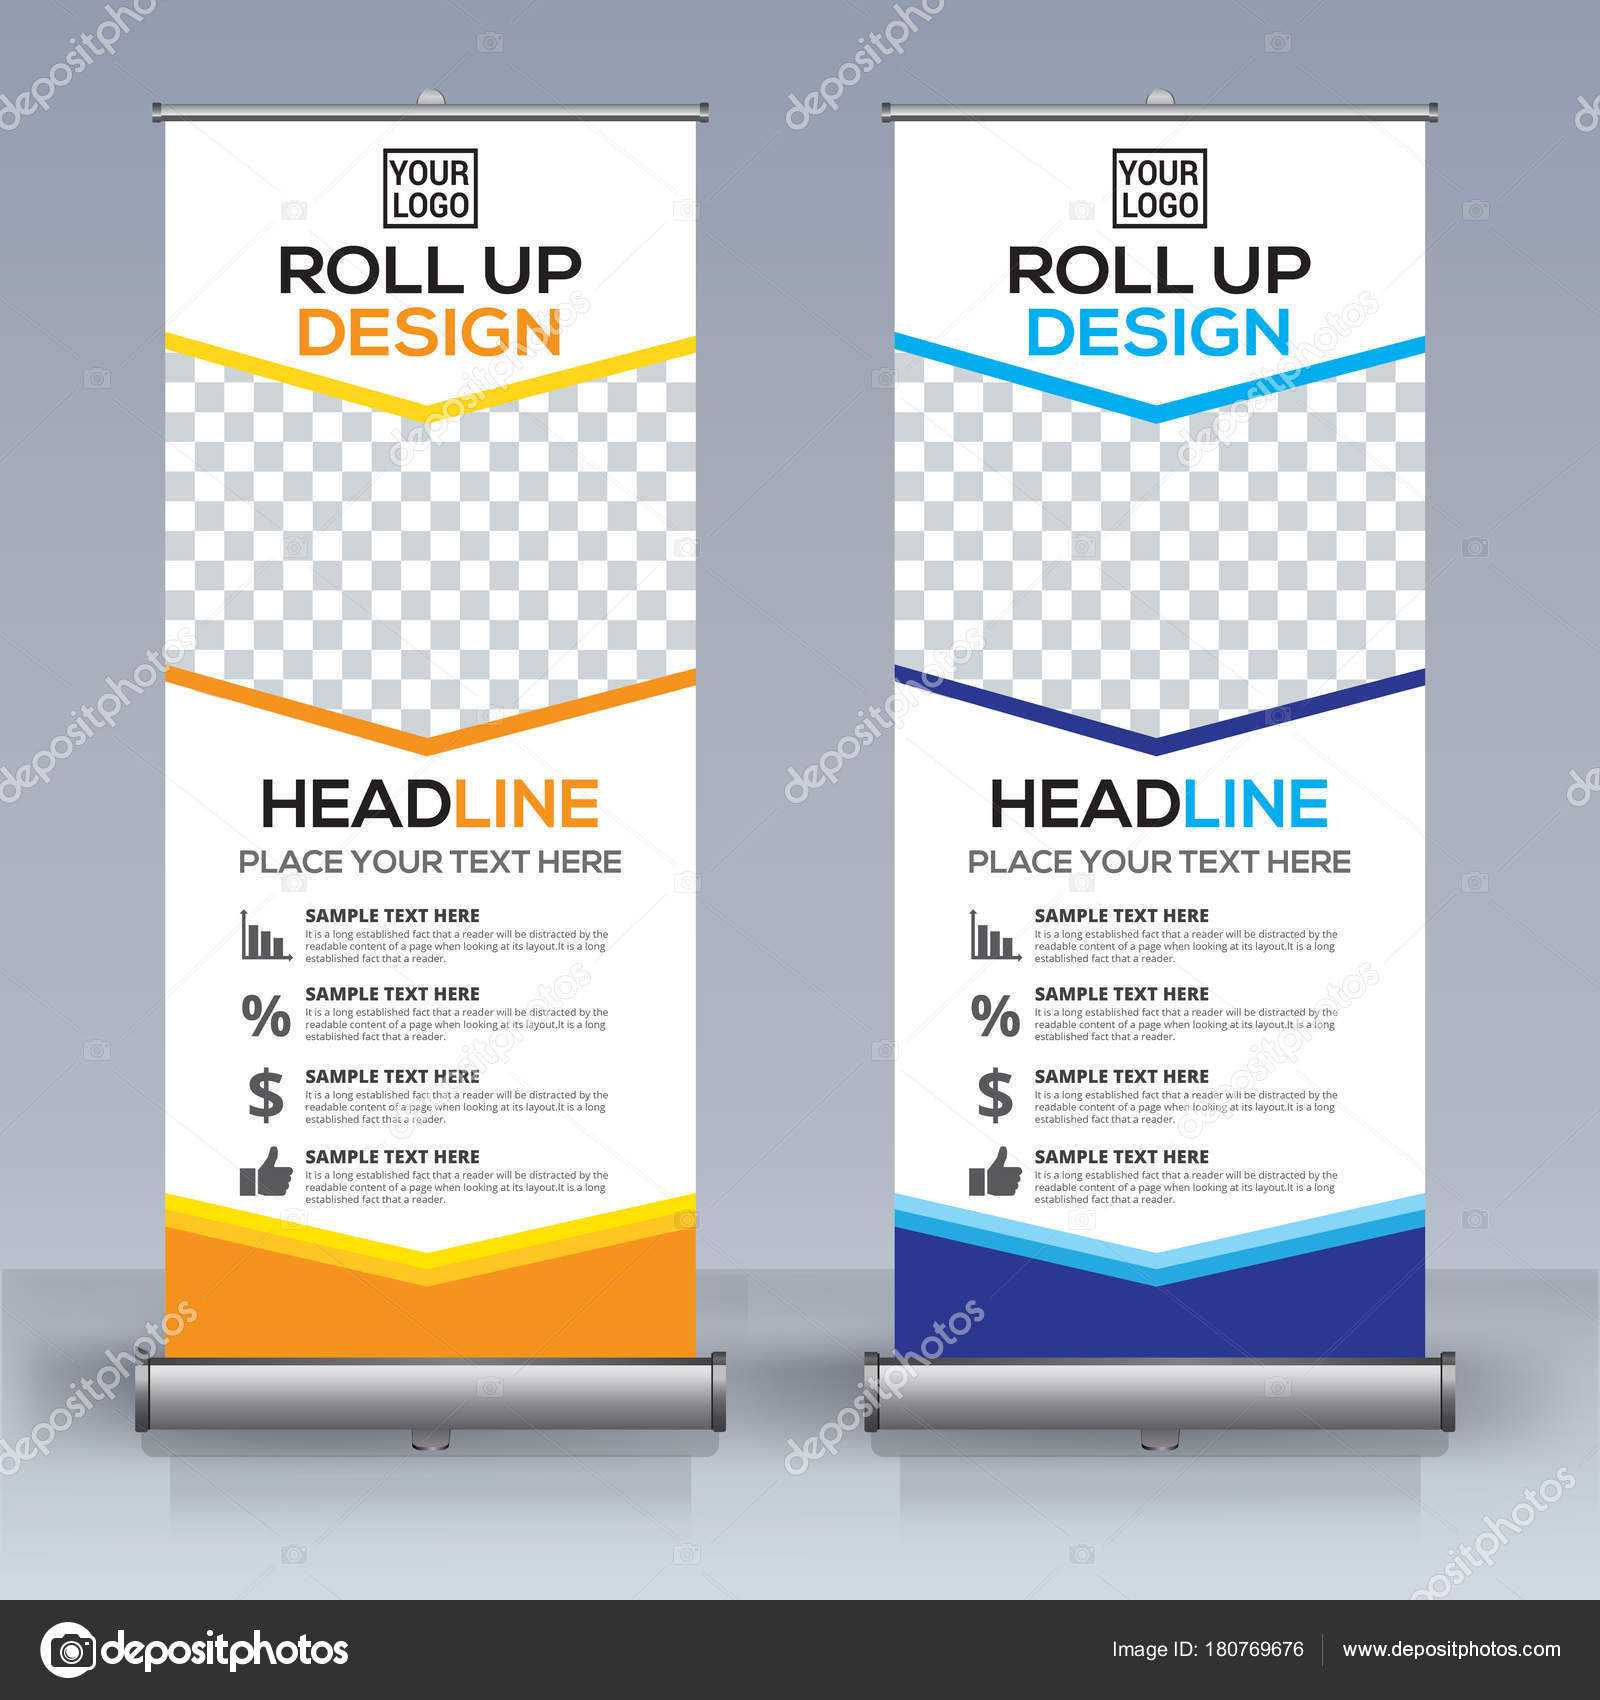 Roll Banner Design Template Vertical Abstract Background for Retractable Banner Design Templates